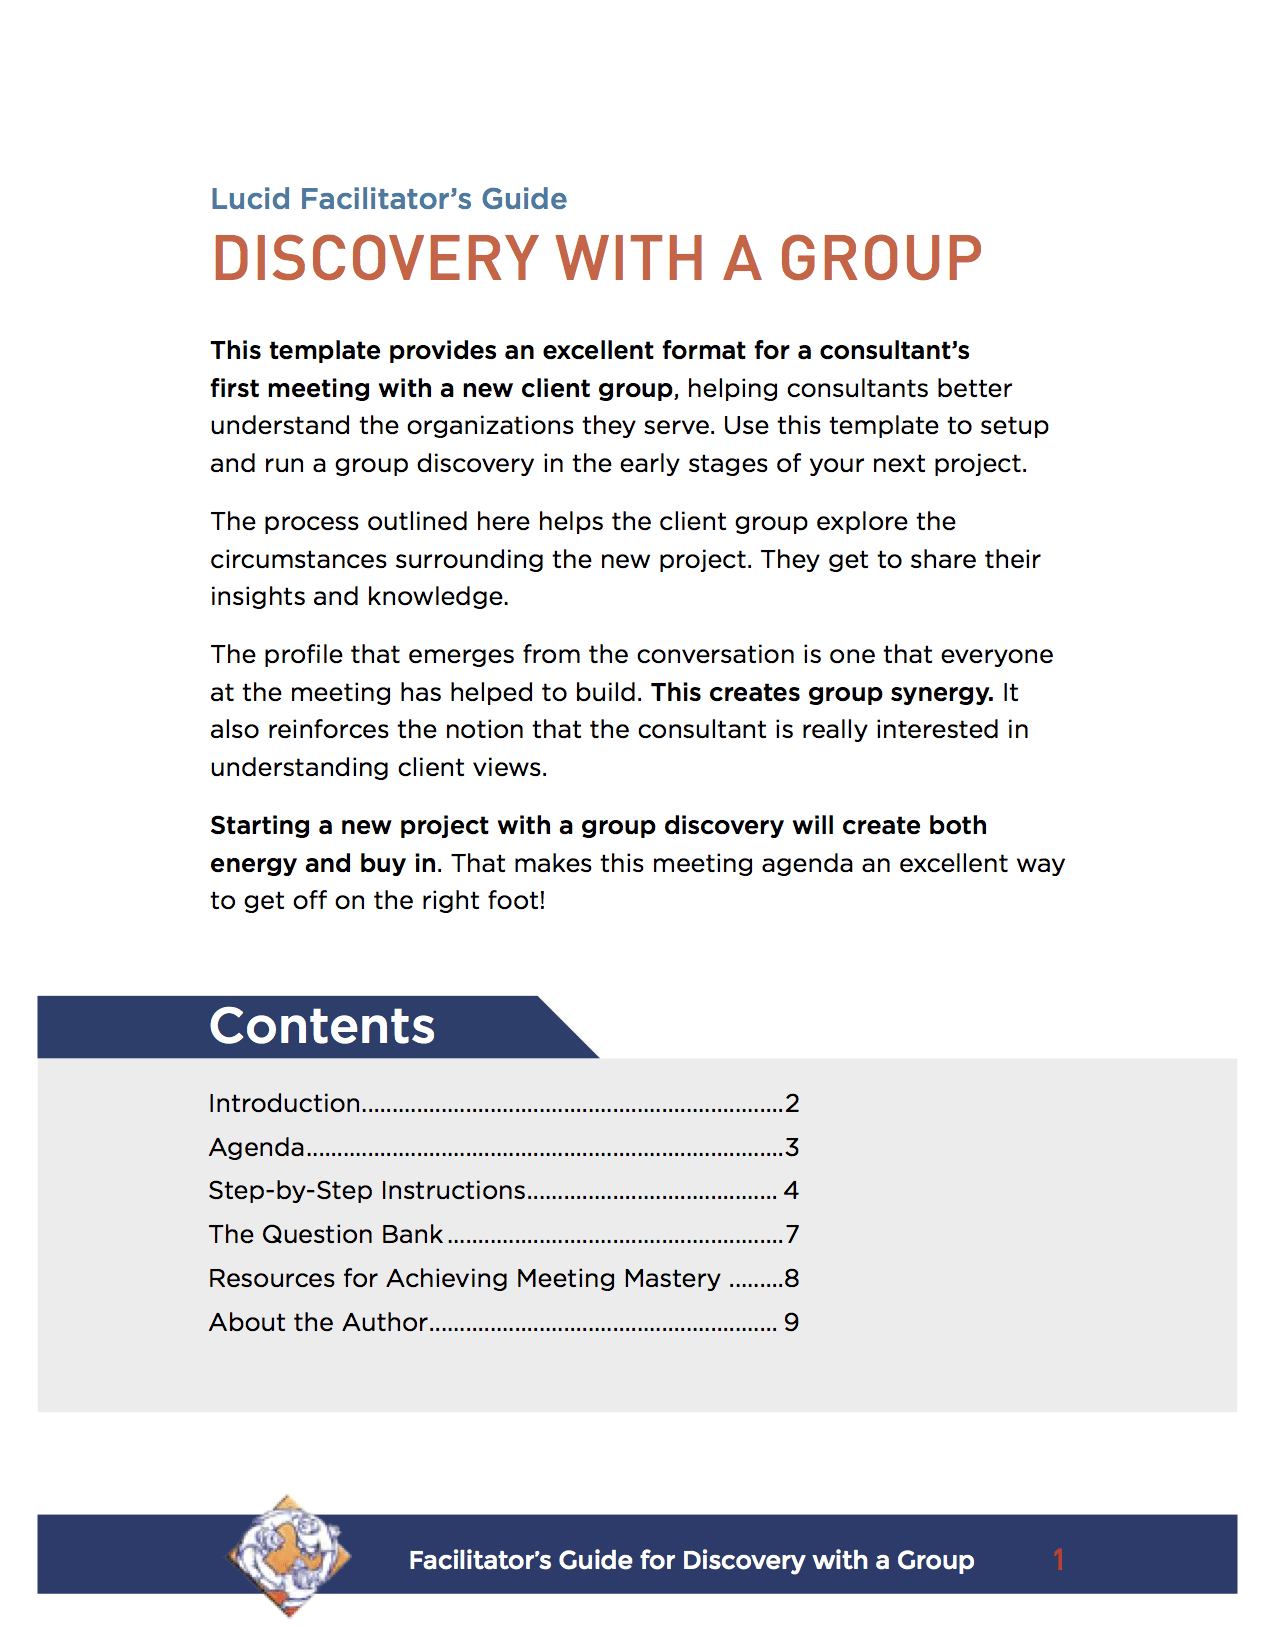 How to Lead a Group Discovery Meeting: Facilitation Techniques for Consultants